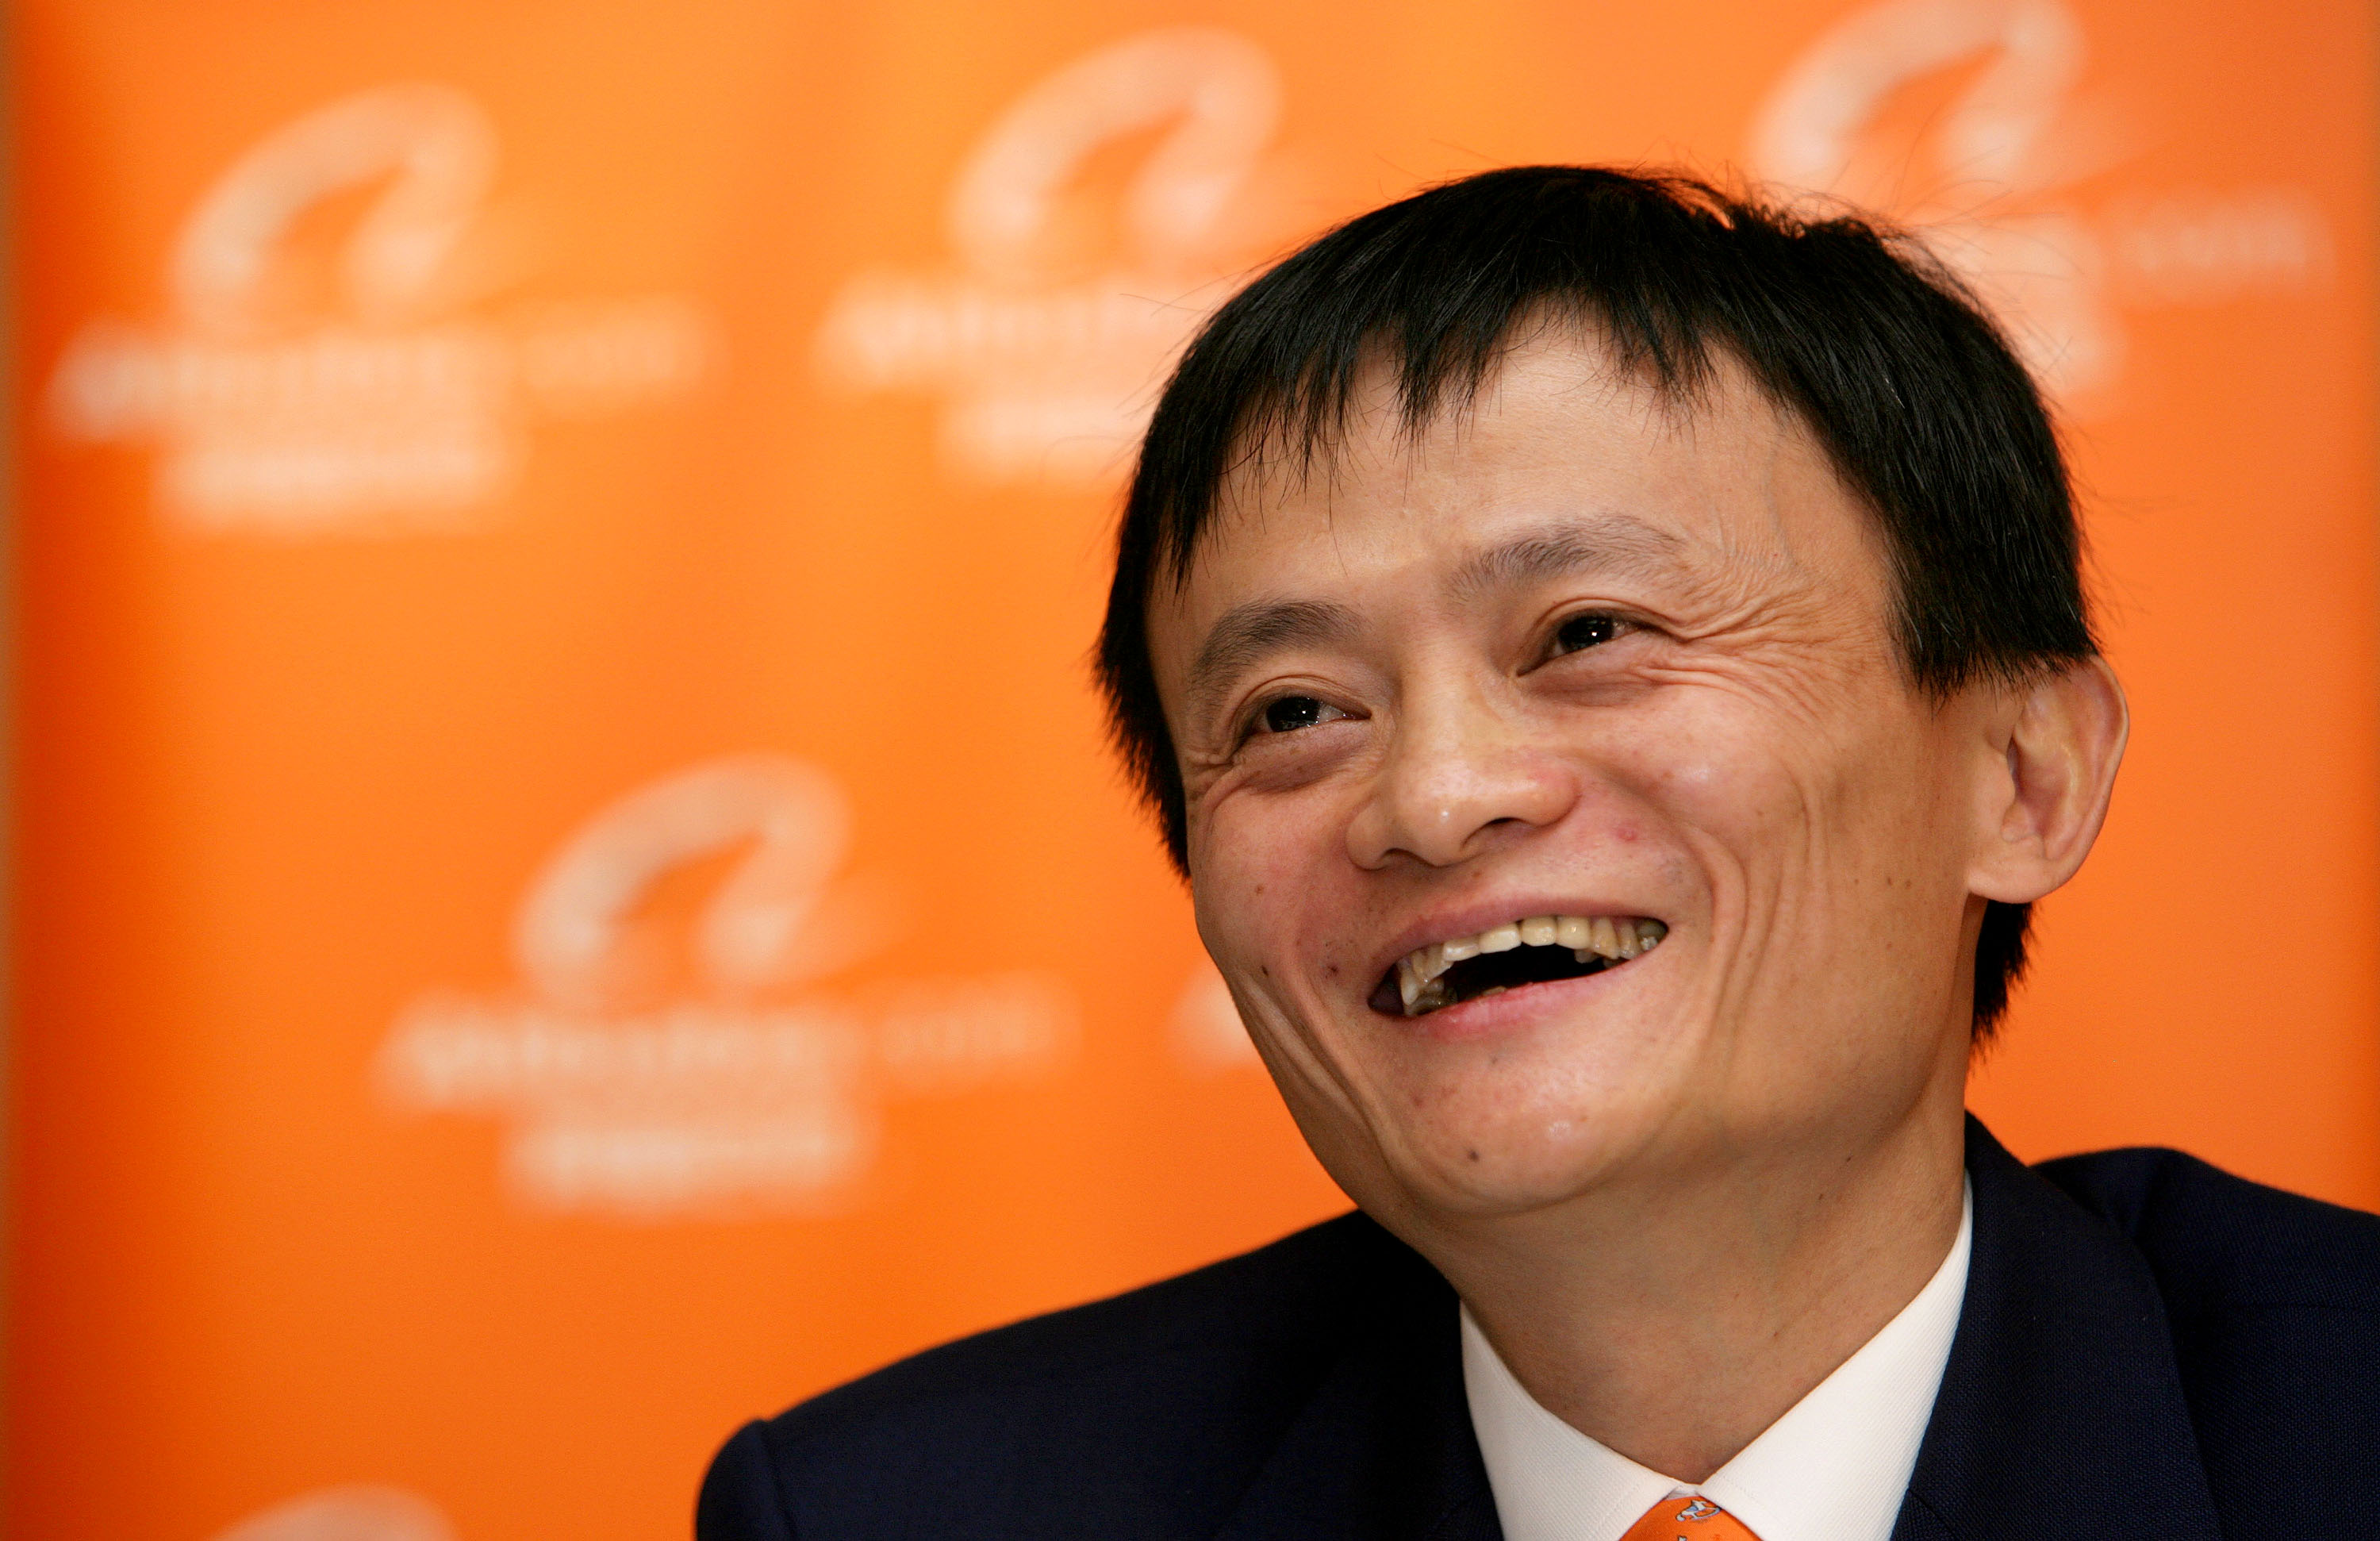 Jack Ma earned a  million dollar salary, leaving the net worth at 37000 million in 2017